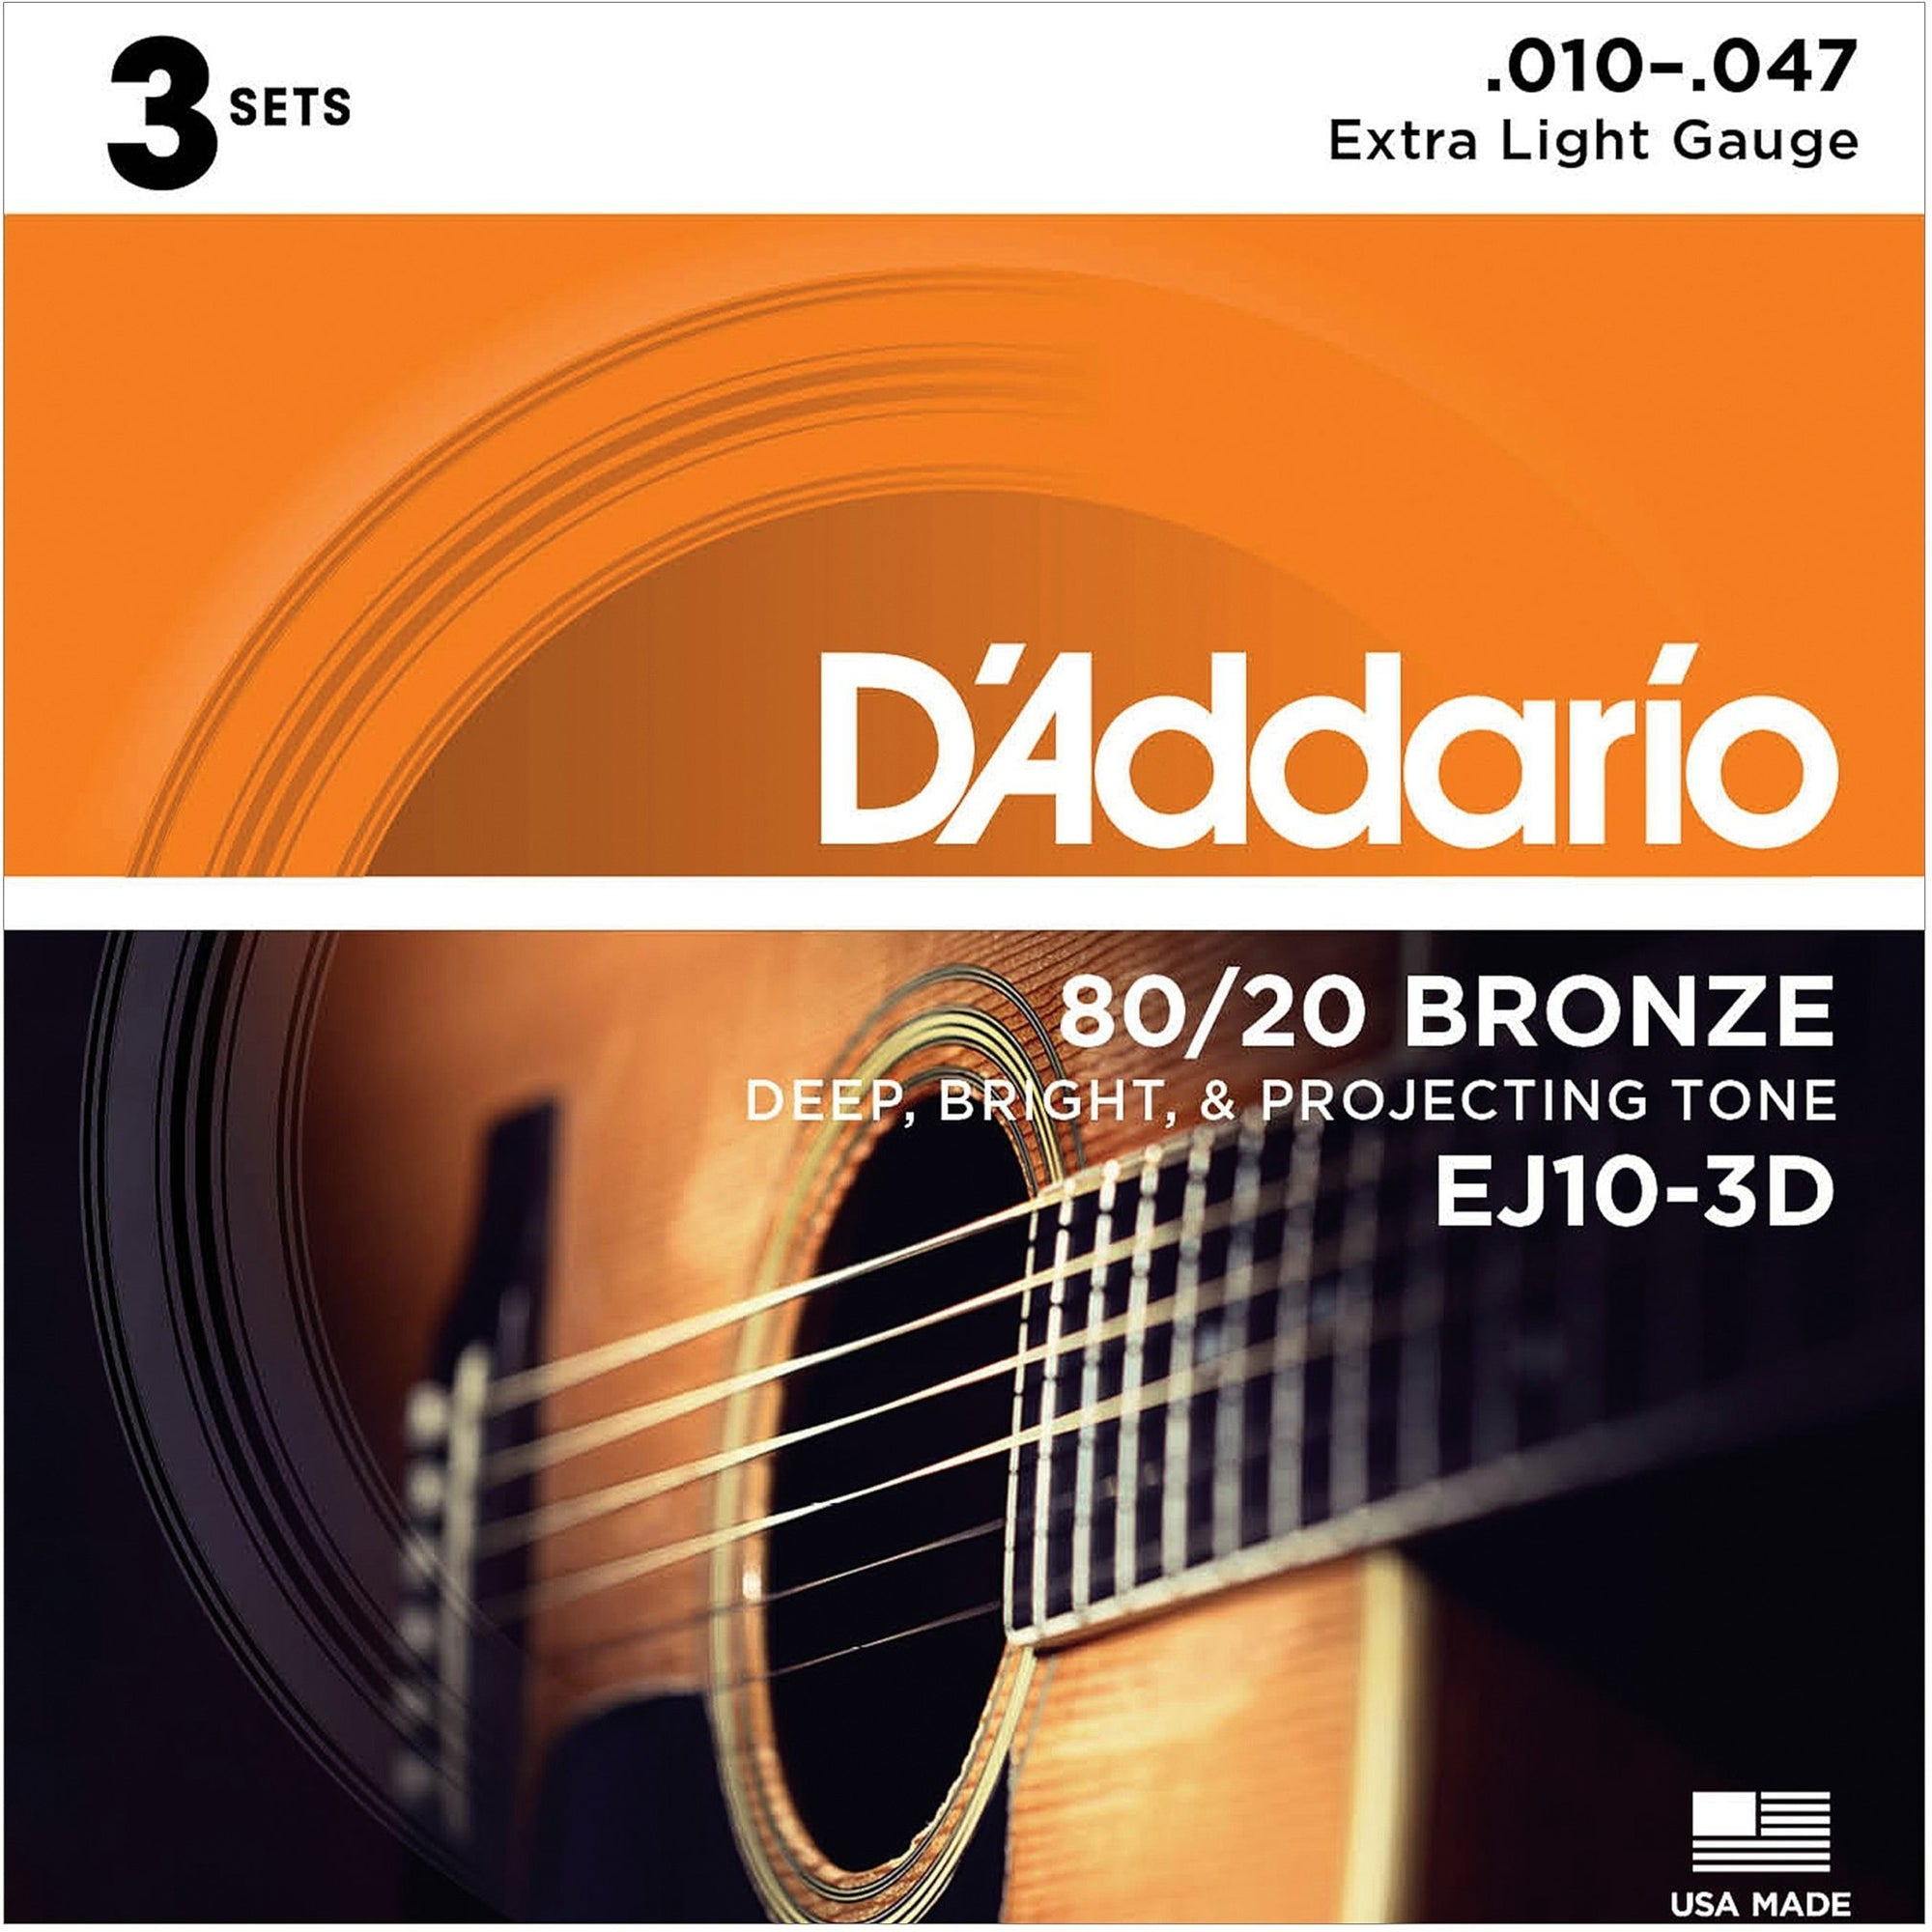 D'Addario 80/20 Bronze Acoustic Guitar Strings, EJ10, Extra Light, 3-Pack, 17441